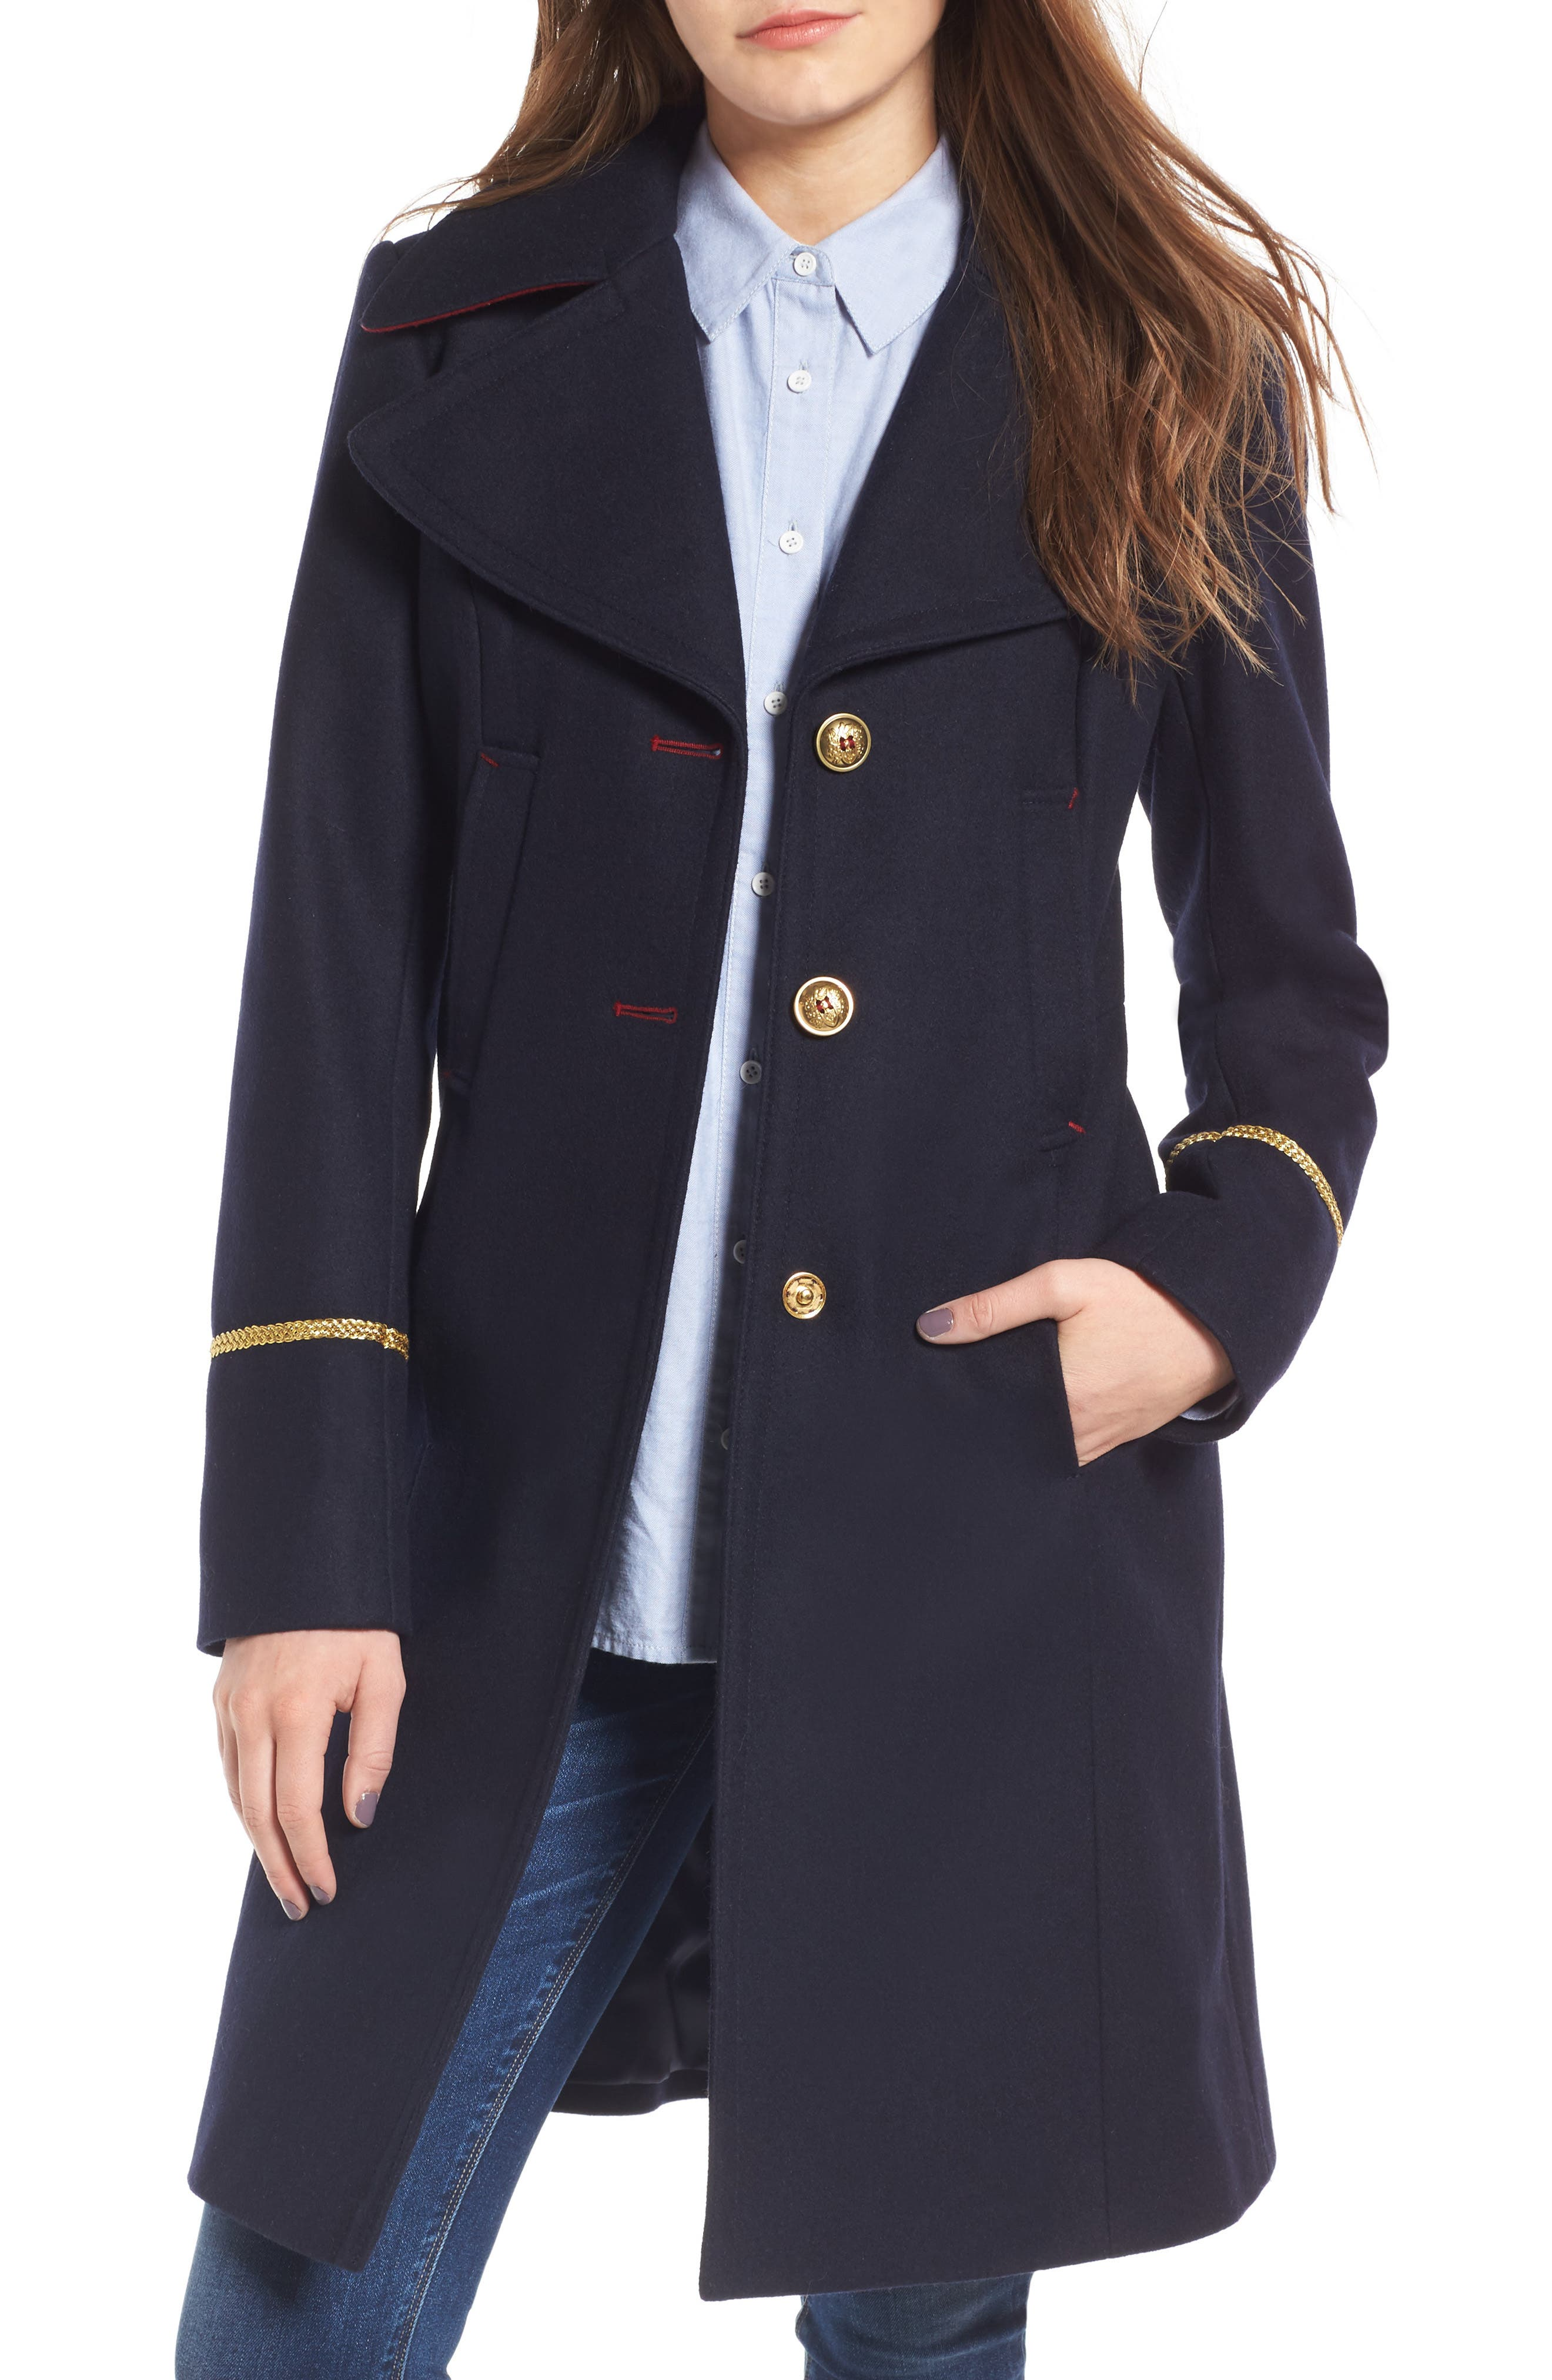 Alternate Image 1 Selected - Sam Edelman Wool Blend A-Line Military Coat